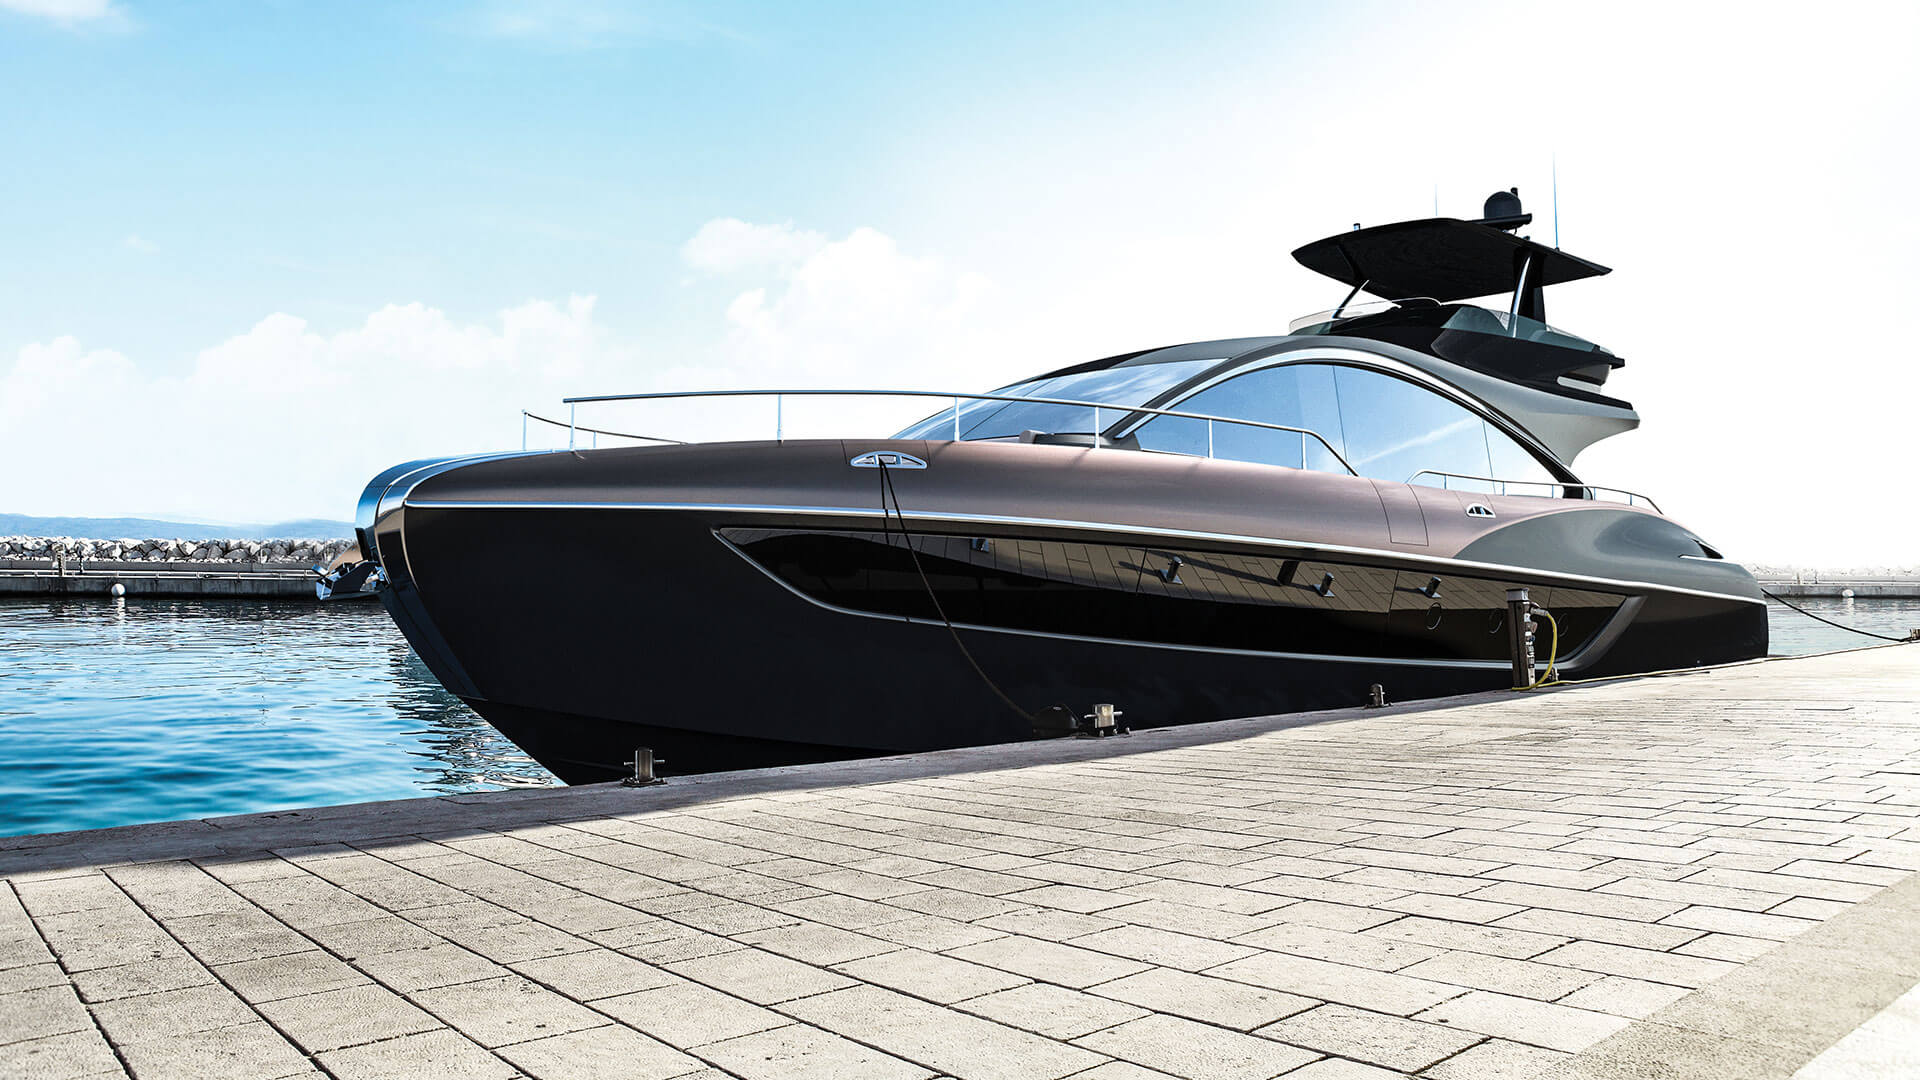 2019 lexus ly 650 luxury yacht gallery 10